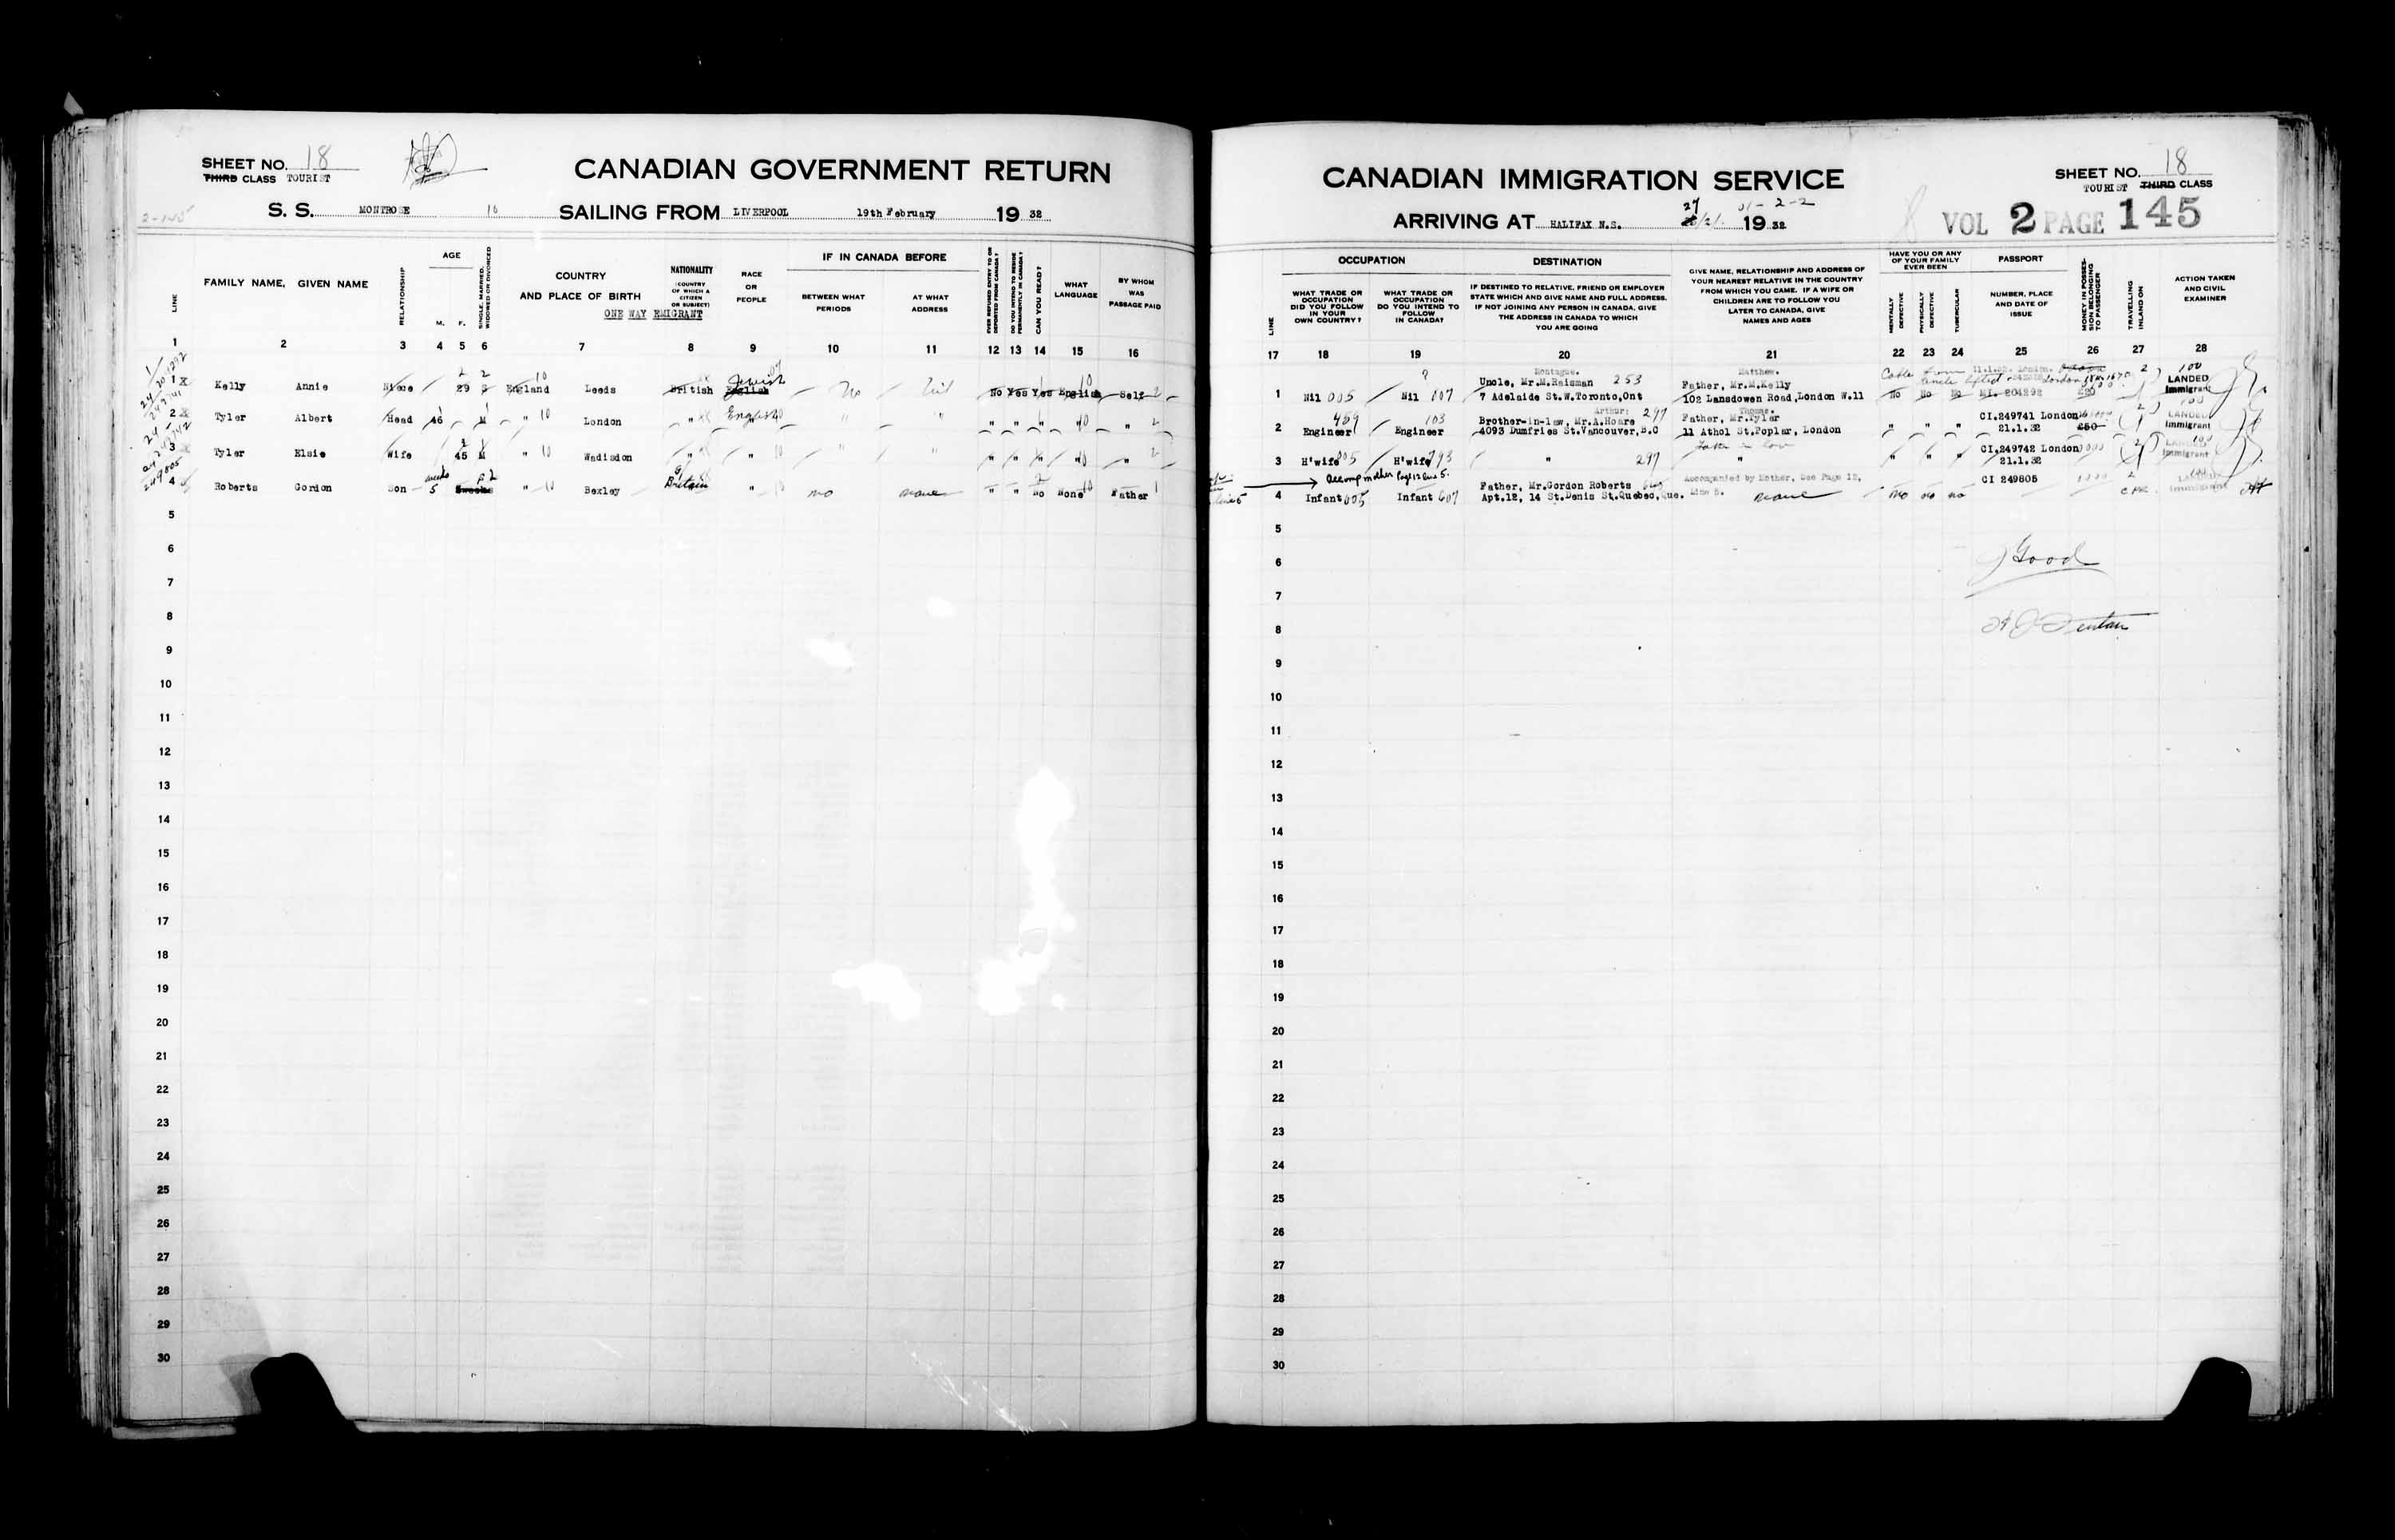 Title: Passenger Lists: Halifax (1925-1935) - Mikan Number: 134853 - Microform: t-14830